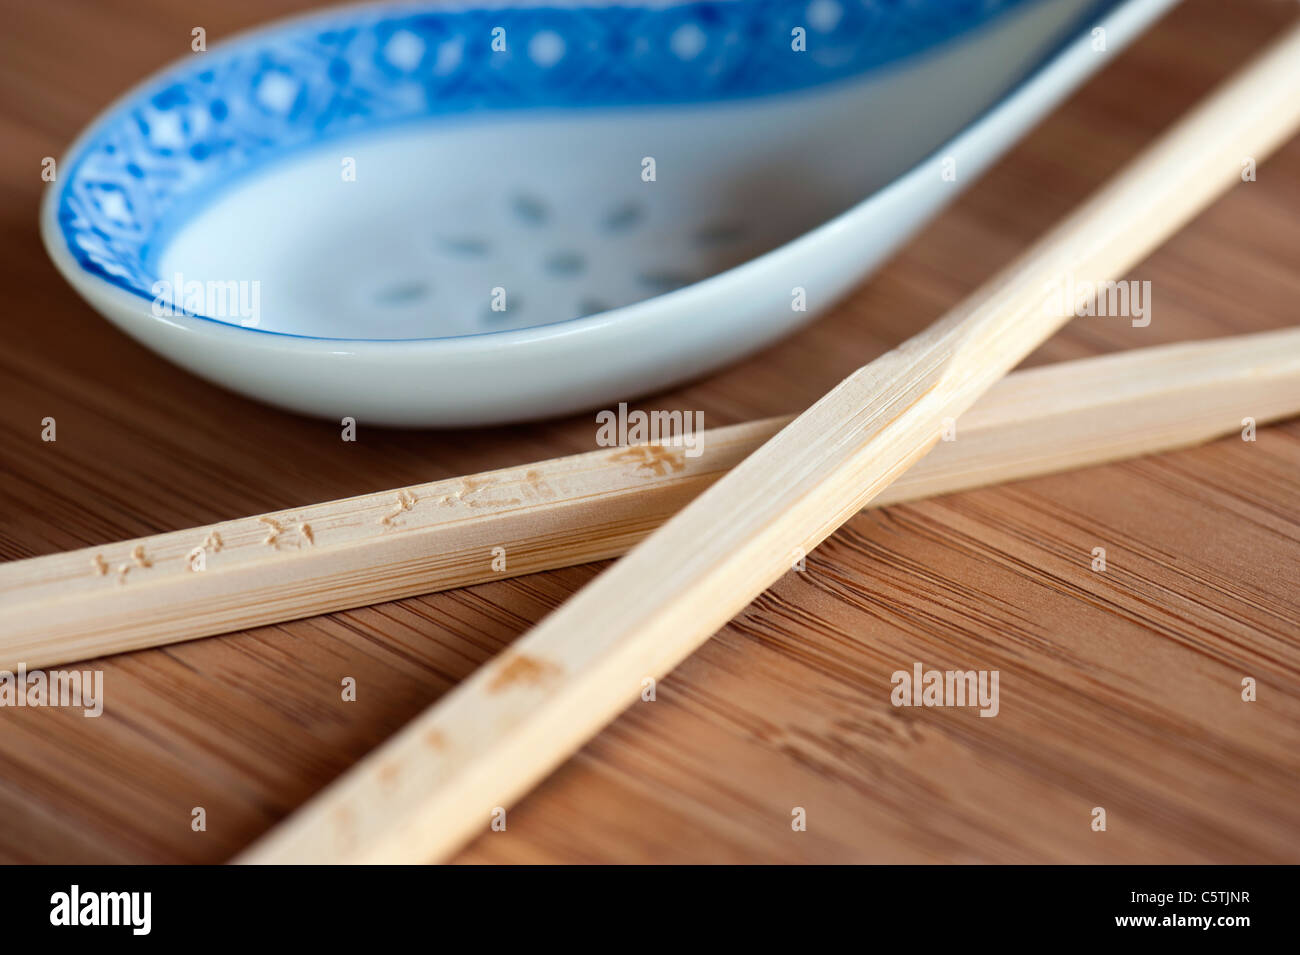 A Pair of Wooden Chopsticks and A Porcelain Chinese Spoon. Shallow DoF. - Stock Image